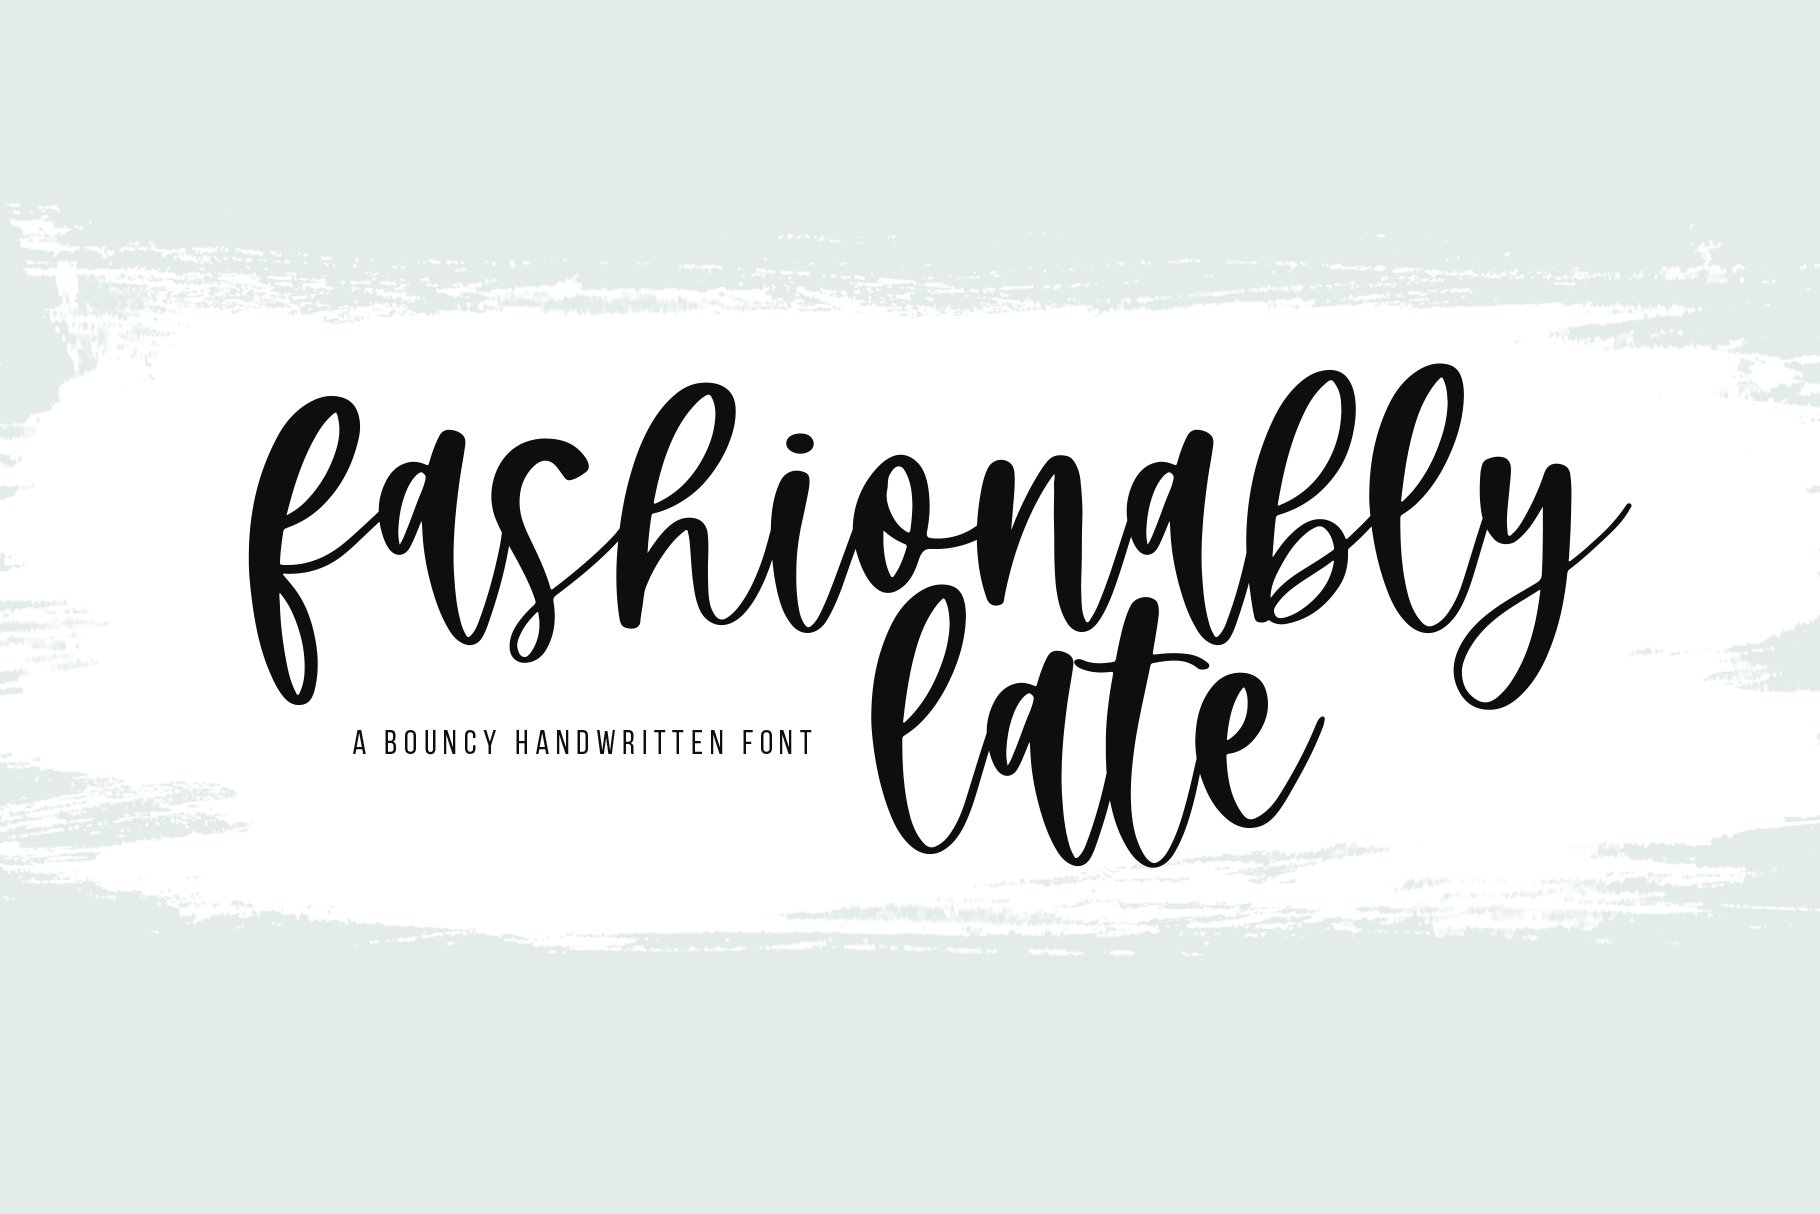 Fashionably Late - A Bouncy Handwritten Script Font example image 1